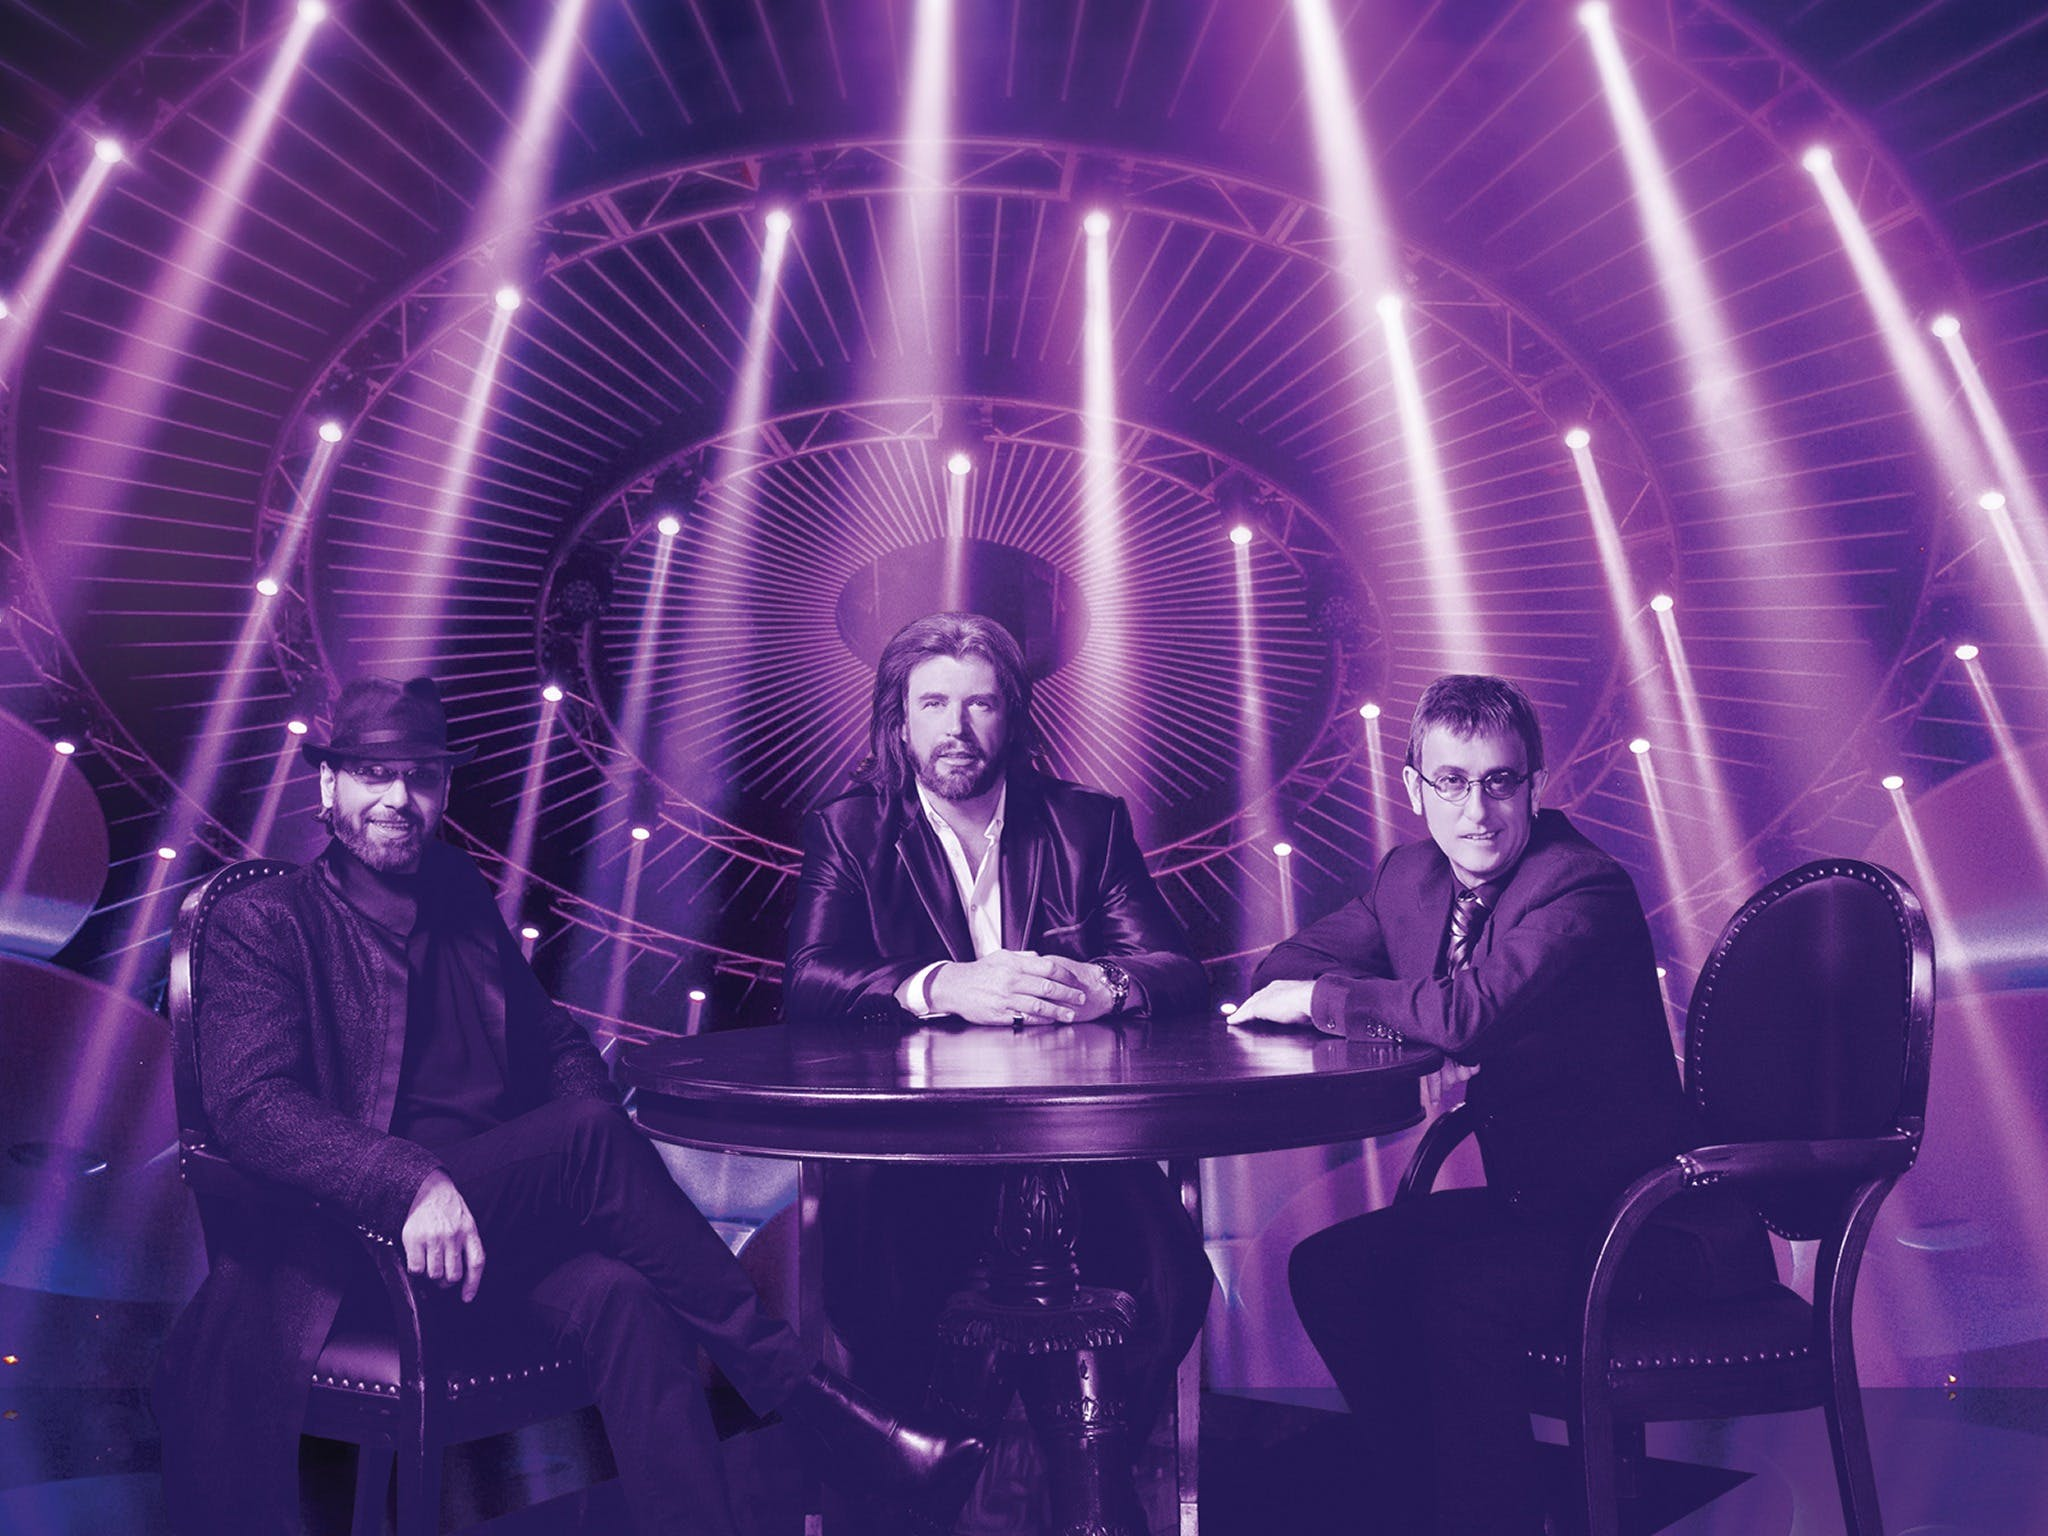 The Australian Bee Gees Show - 25th Anniversary Tour - Sale - Accommodation Resorts